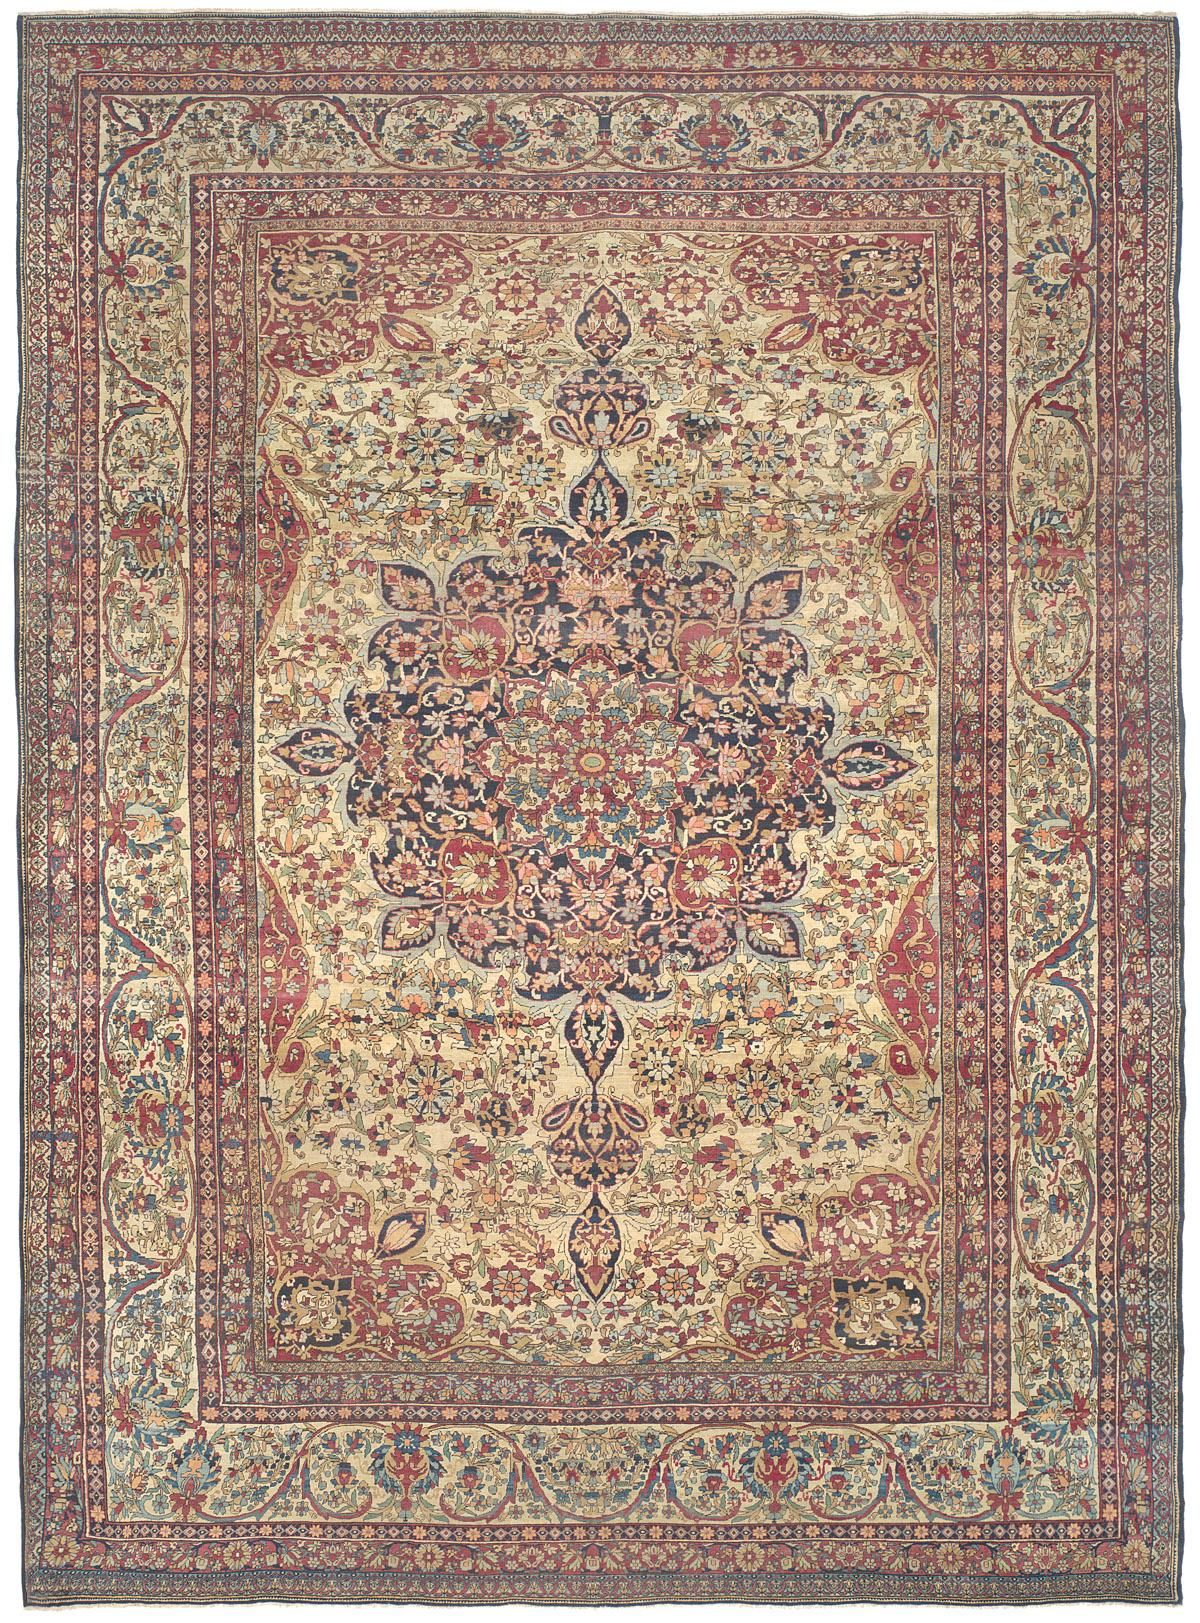 Effusive Floral Patterning And A Wide Ranging Naturally Dyed Palette Creates An Infinitely Detailed Mosaic In This S Rugs On Carpet Antique Oriental Rugs Rugs